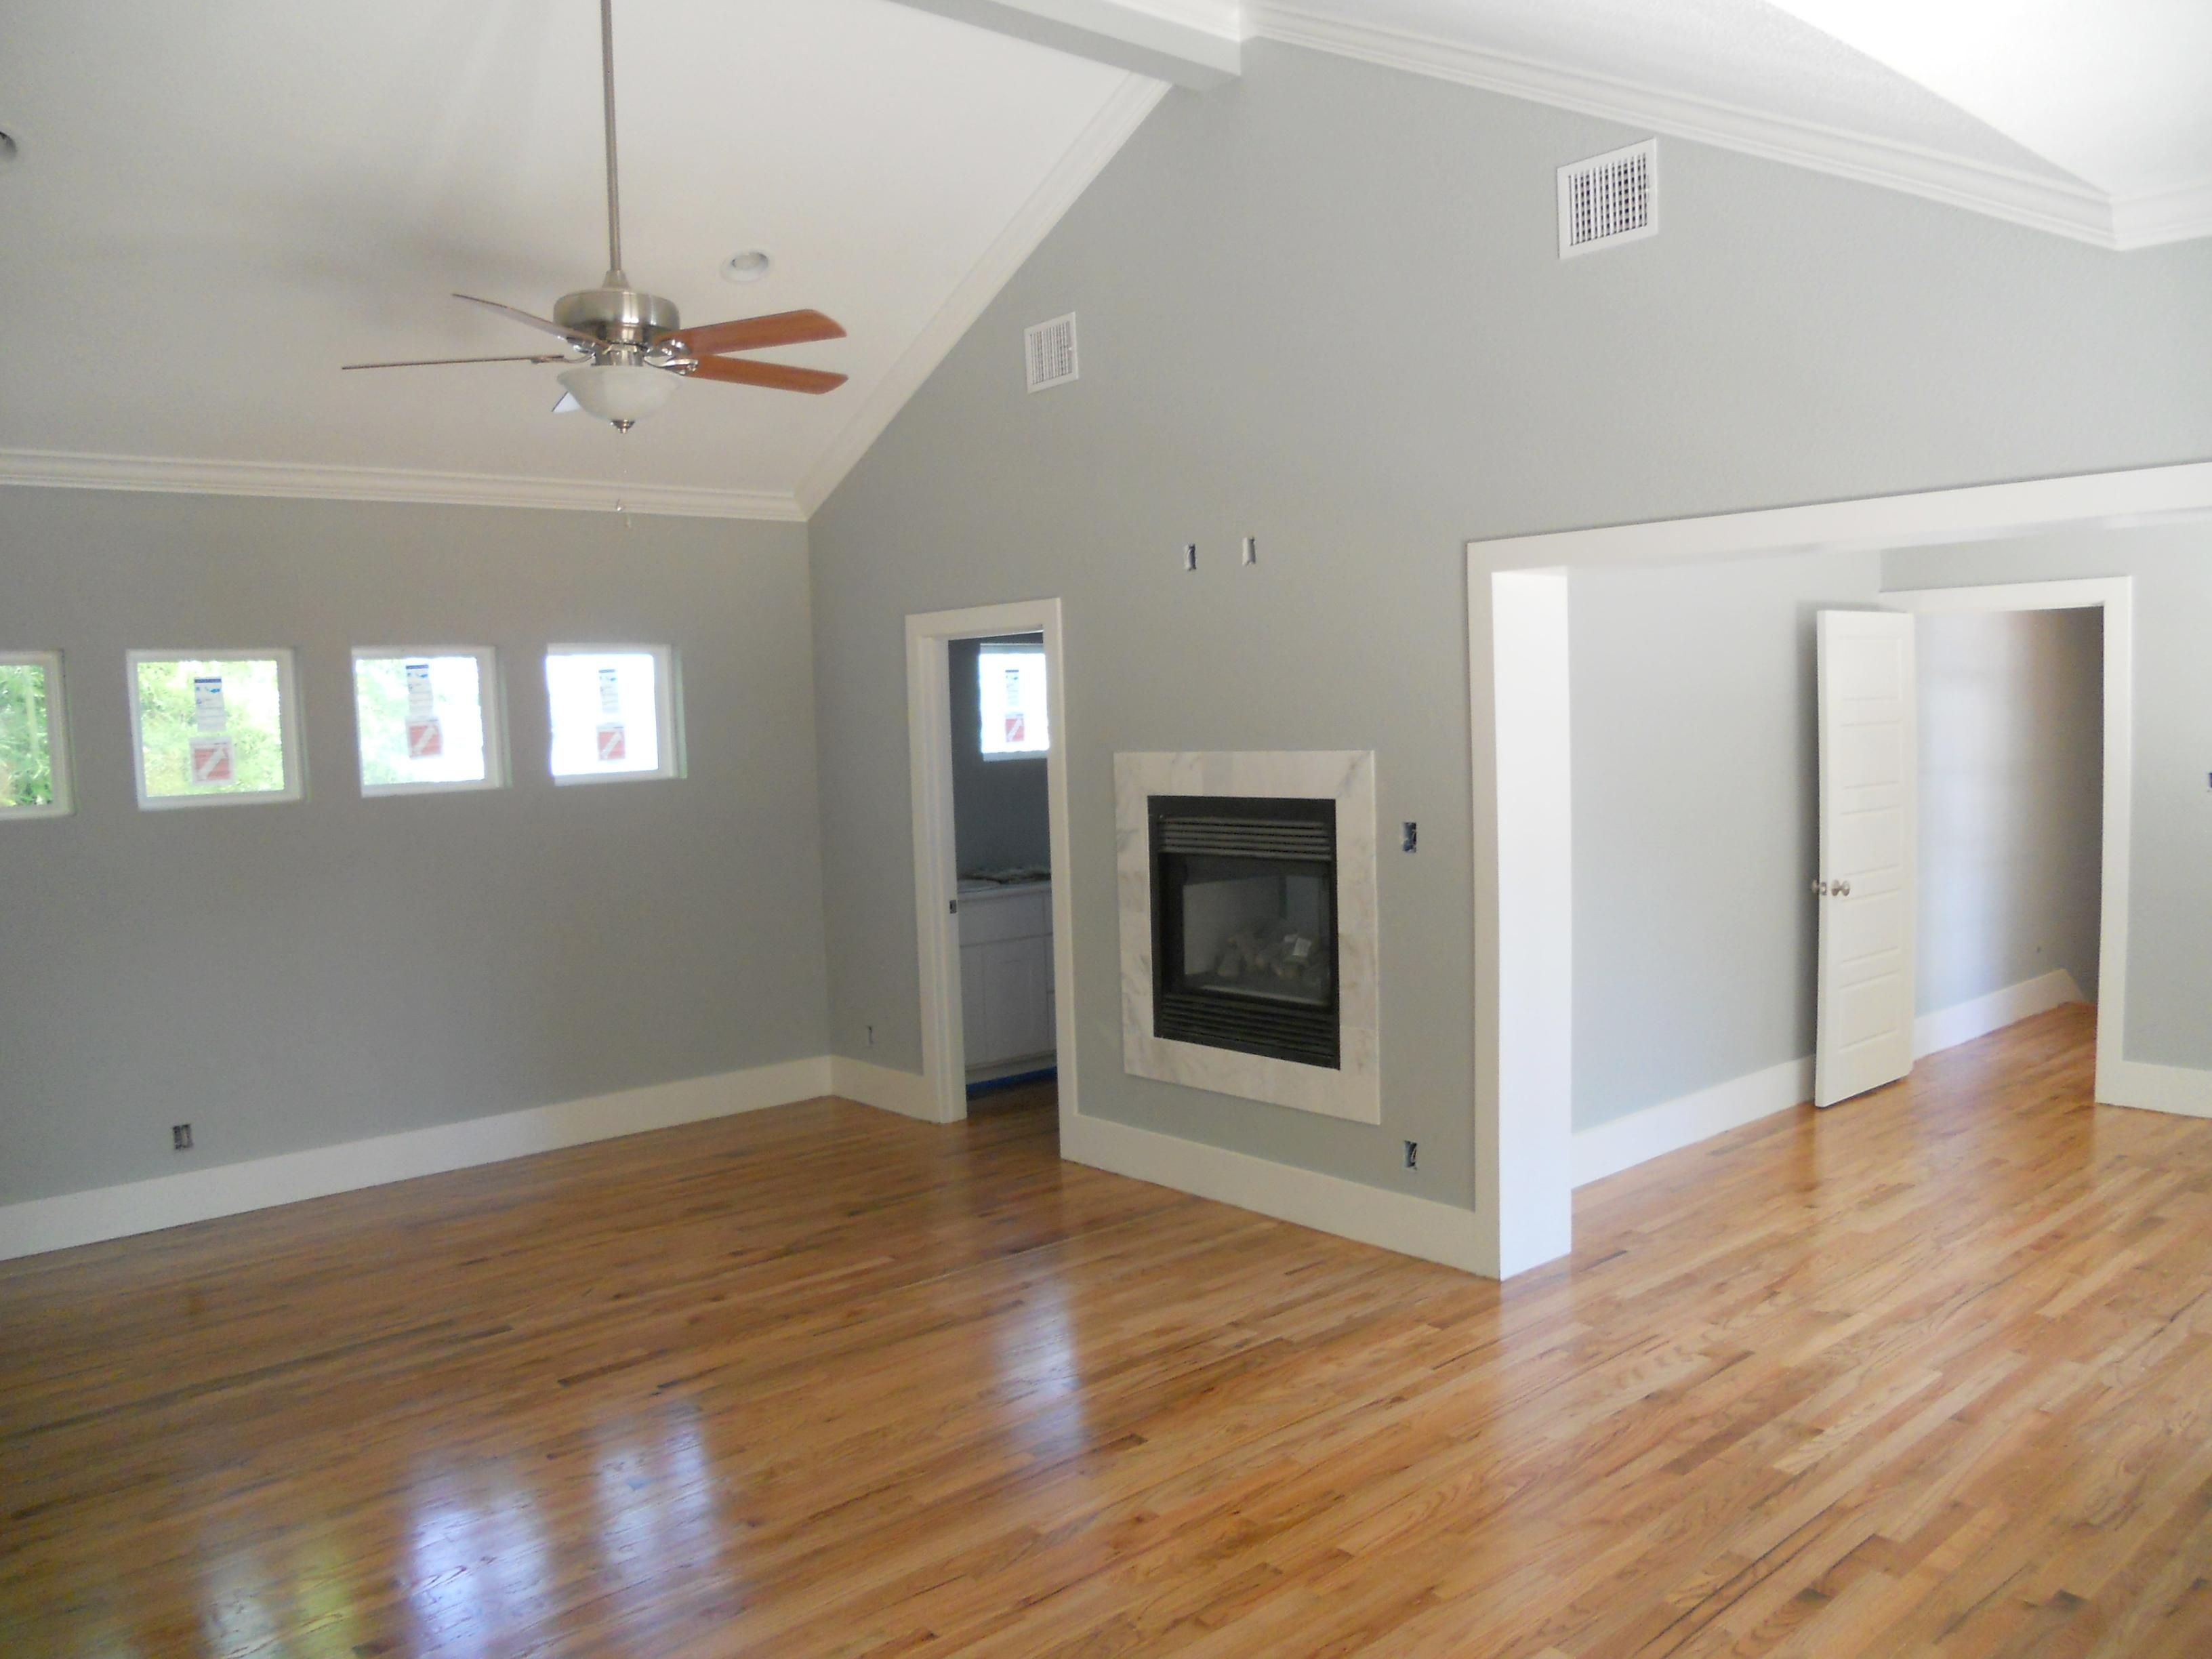 wall colors for oak floors - Google Search    Home Design ...